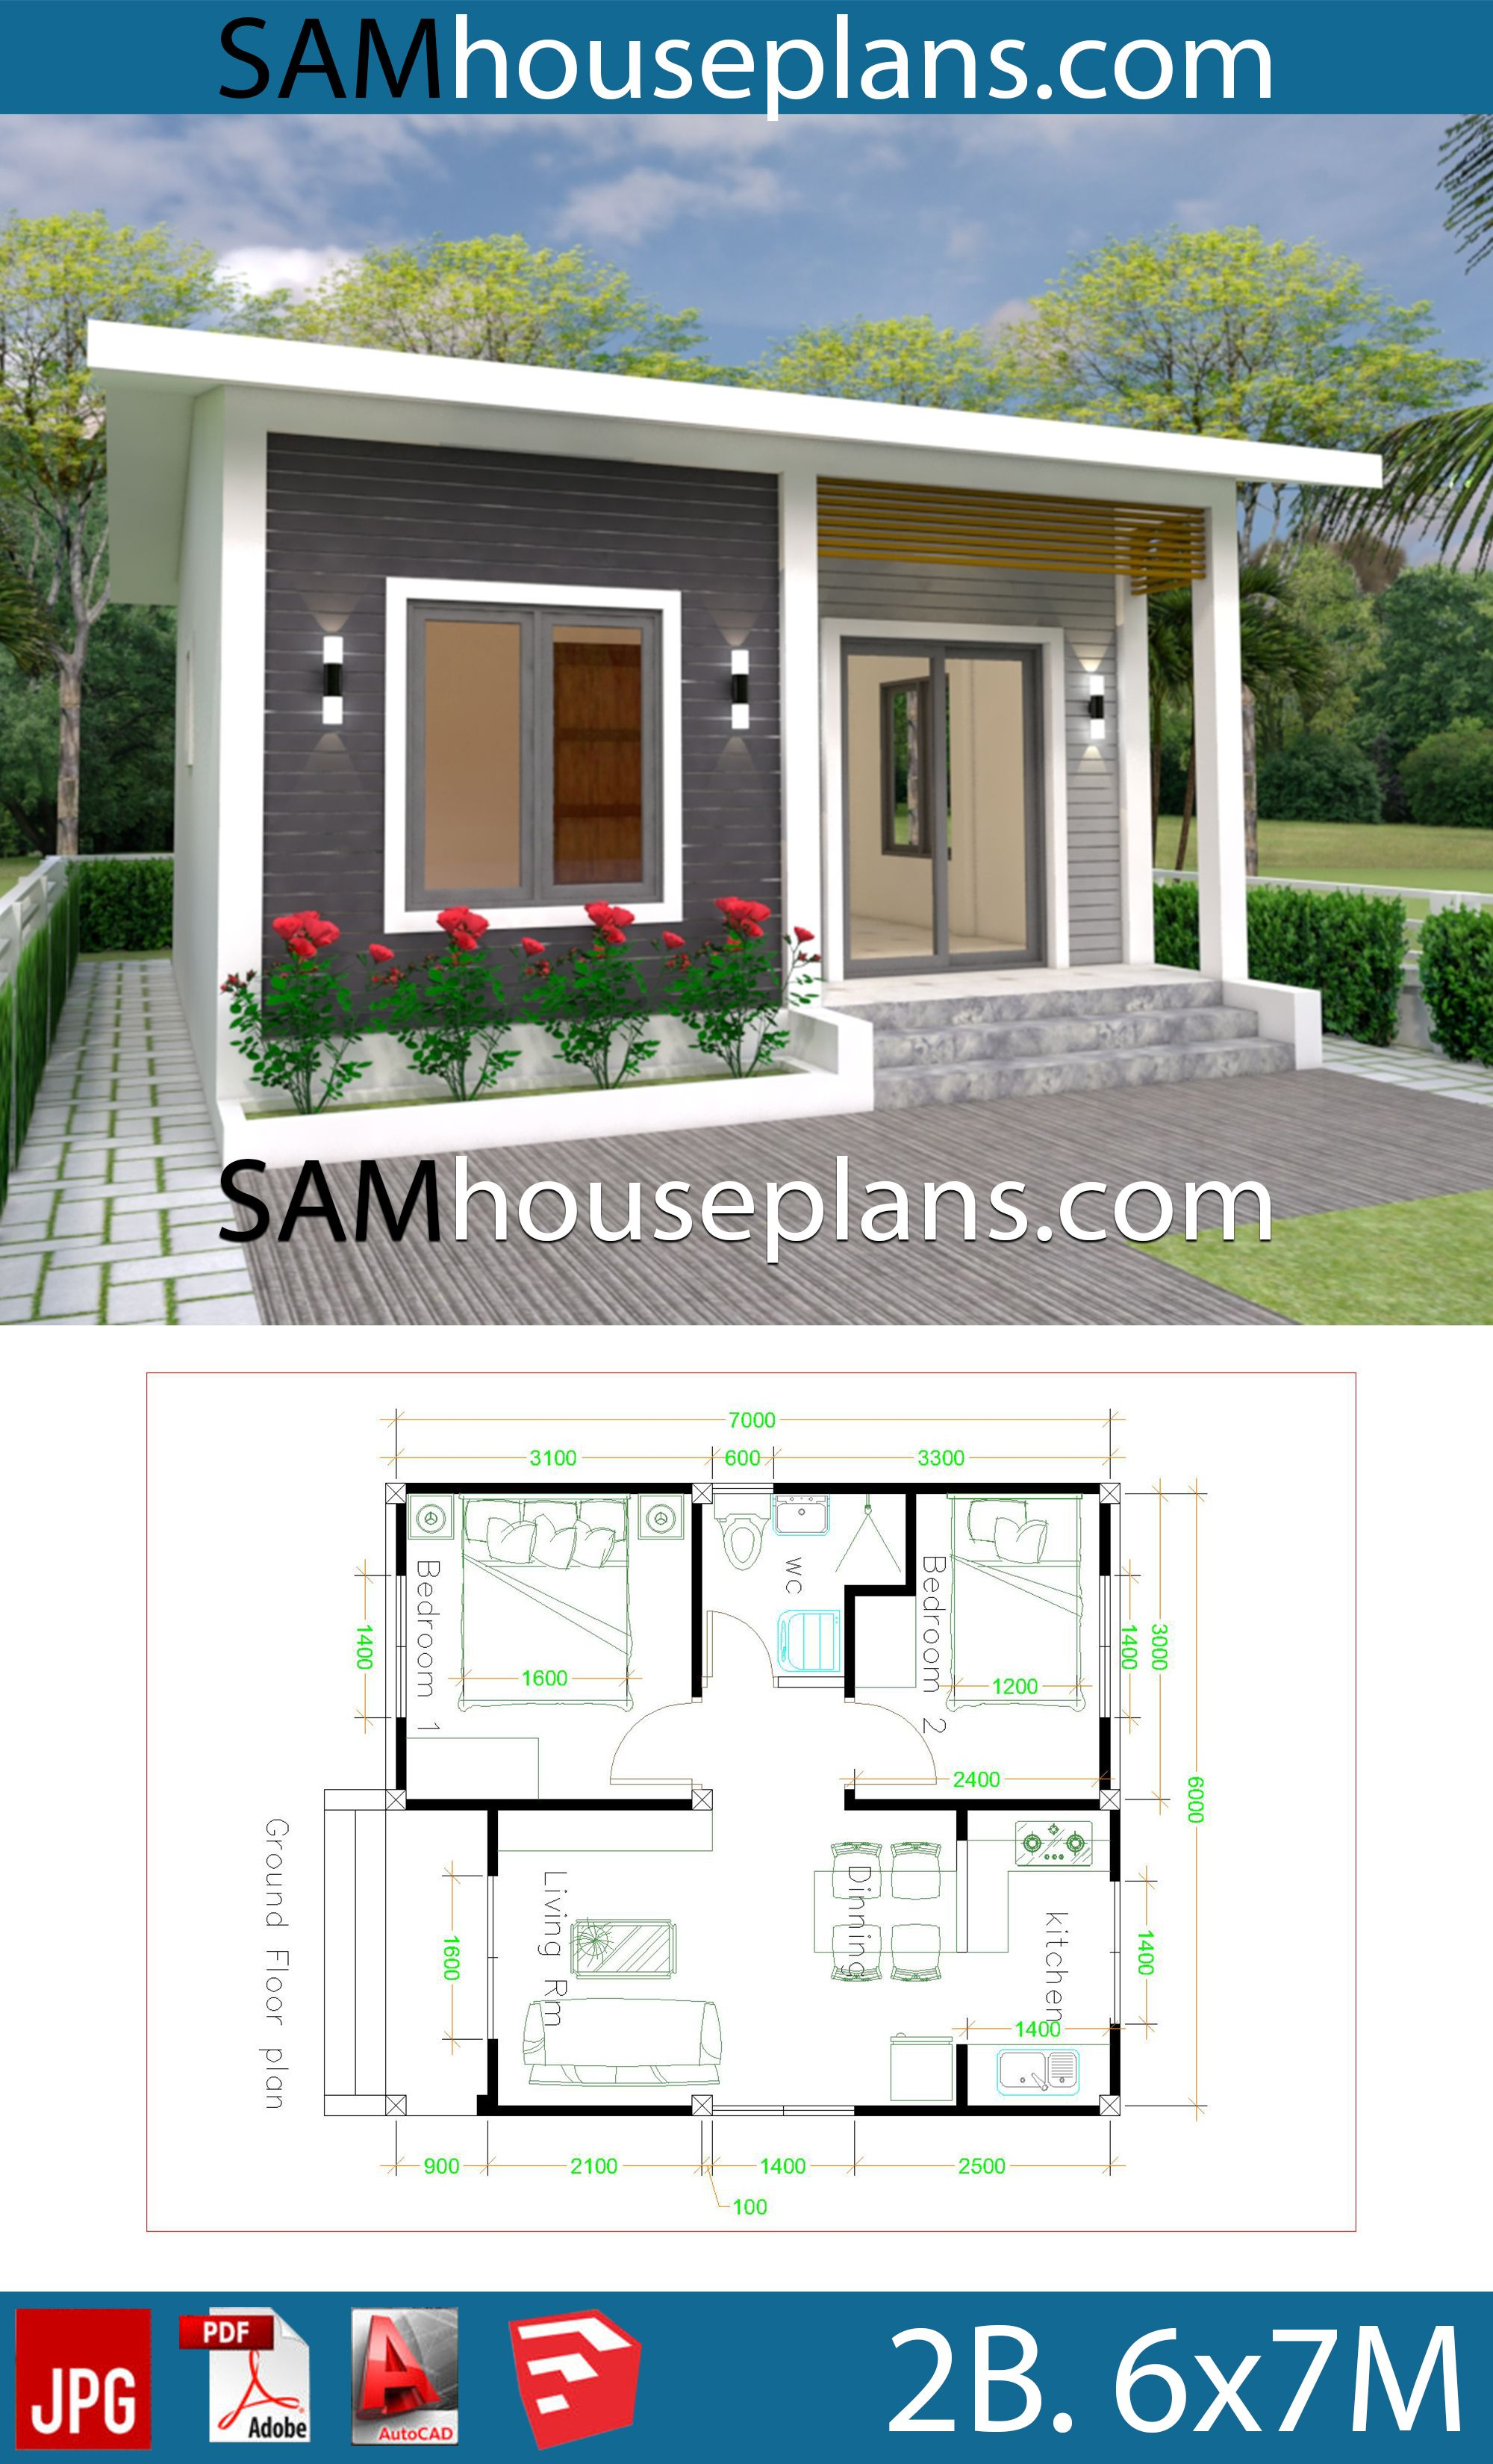 House Plans 6x7m With 2 Bedrooms House Plans Free Downloads Simple House Design Small House Design Plans Bungalow House Design